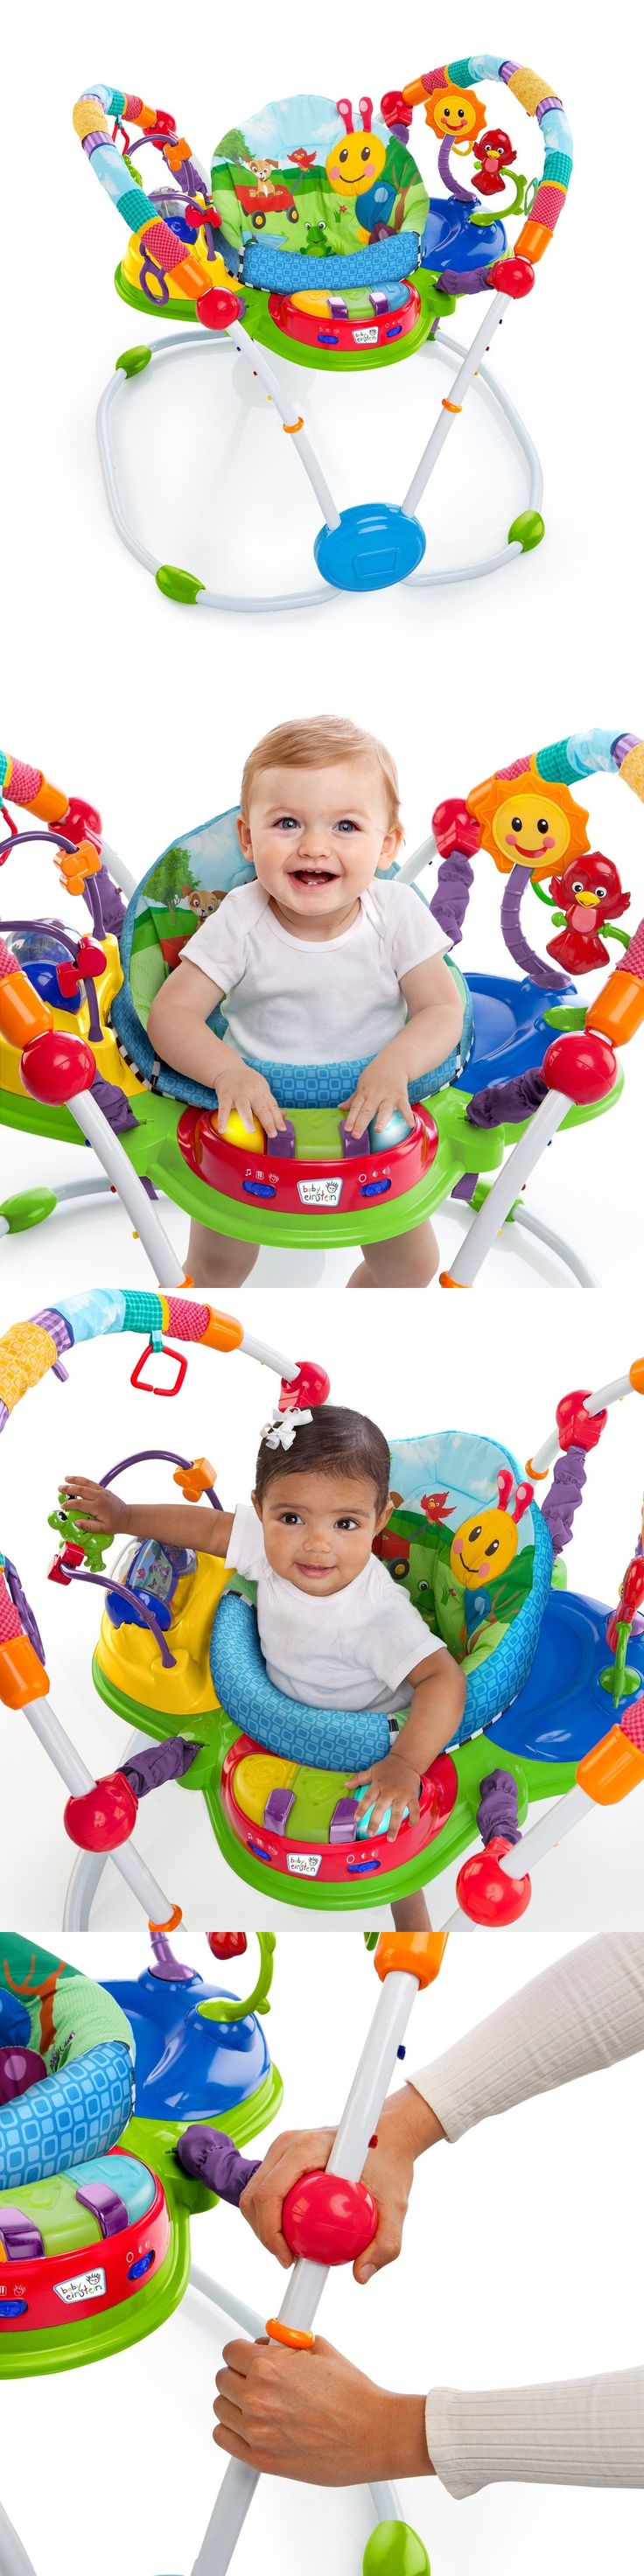 Baby Jumping Exercisers 117032: Openbox Baby Einstein Activity Jumper Special Edition, Neighborhood Friends -> BUY IT NOW ONLY: $88.82 on eBay!